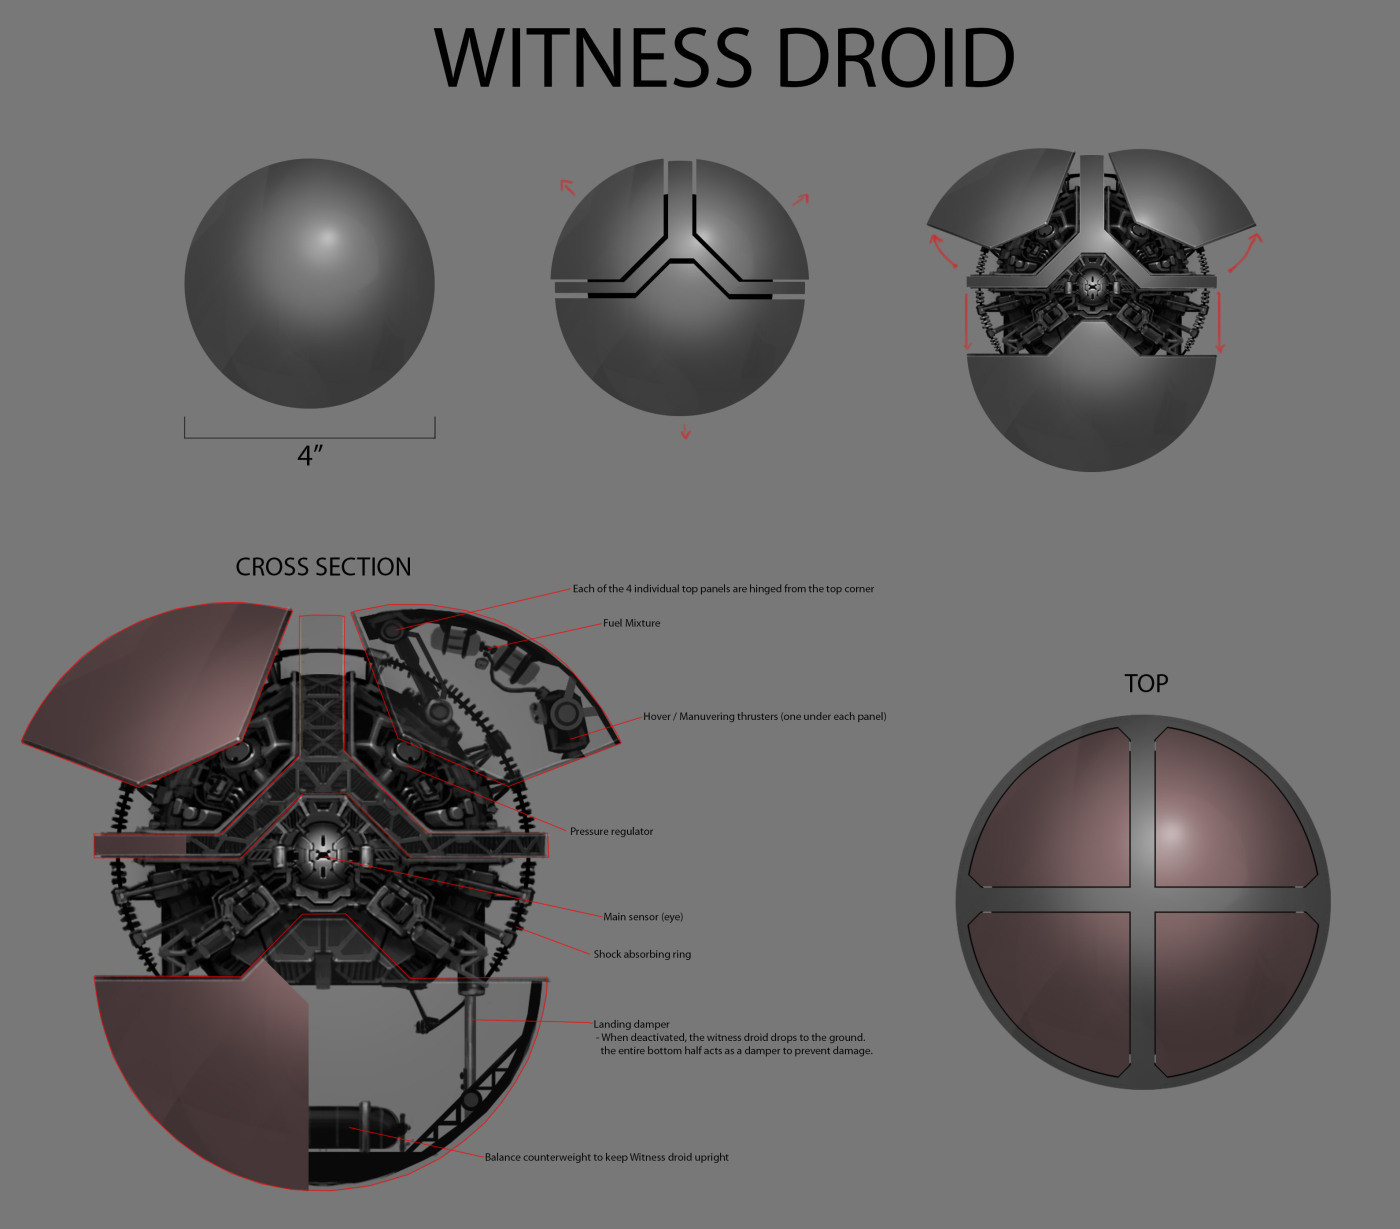 Jeff bartzis witness droid 01